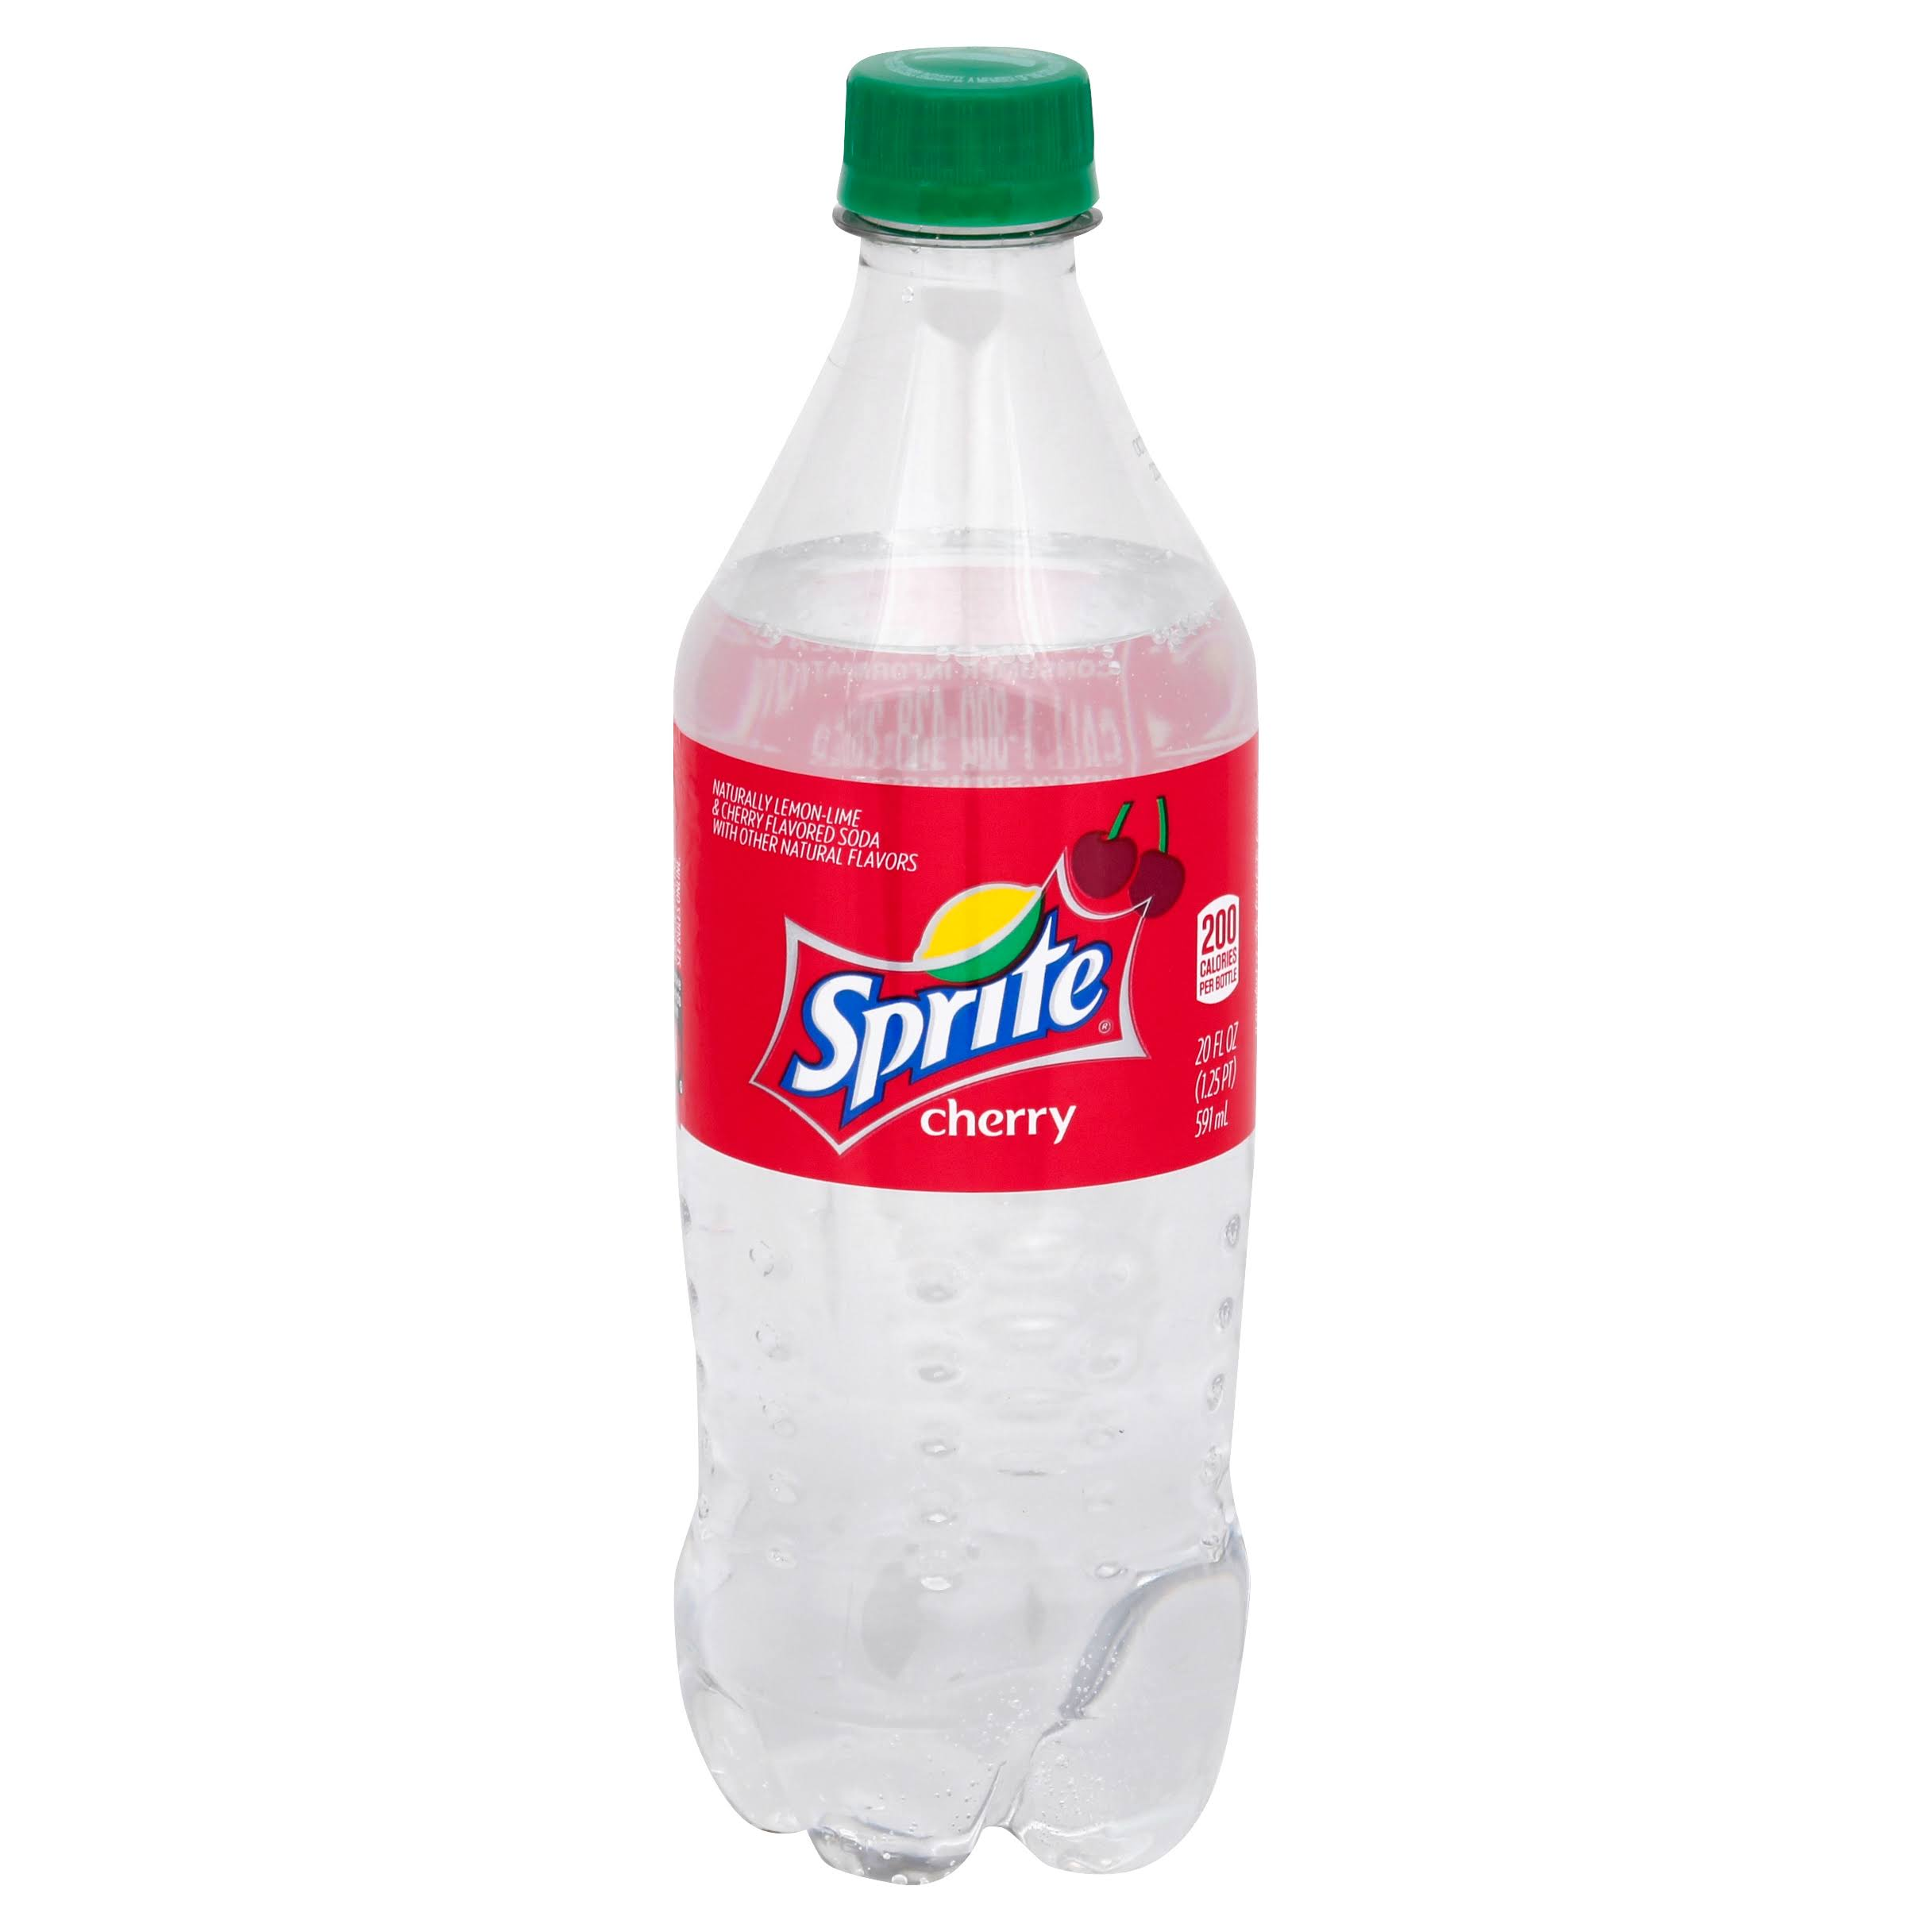 Sprite Soda - Cherry, 20oz